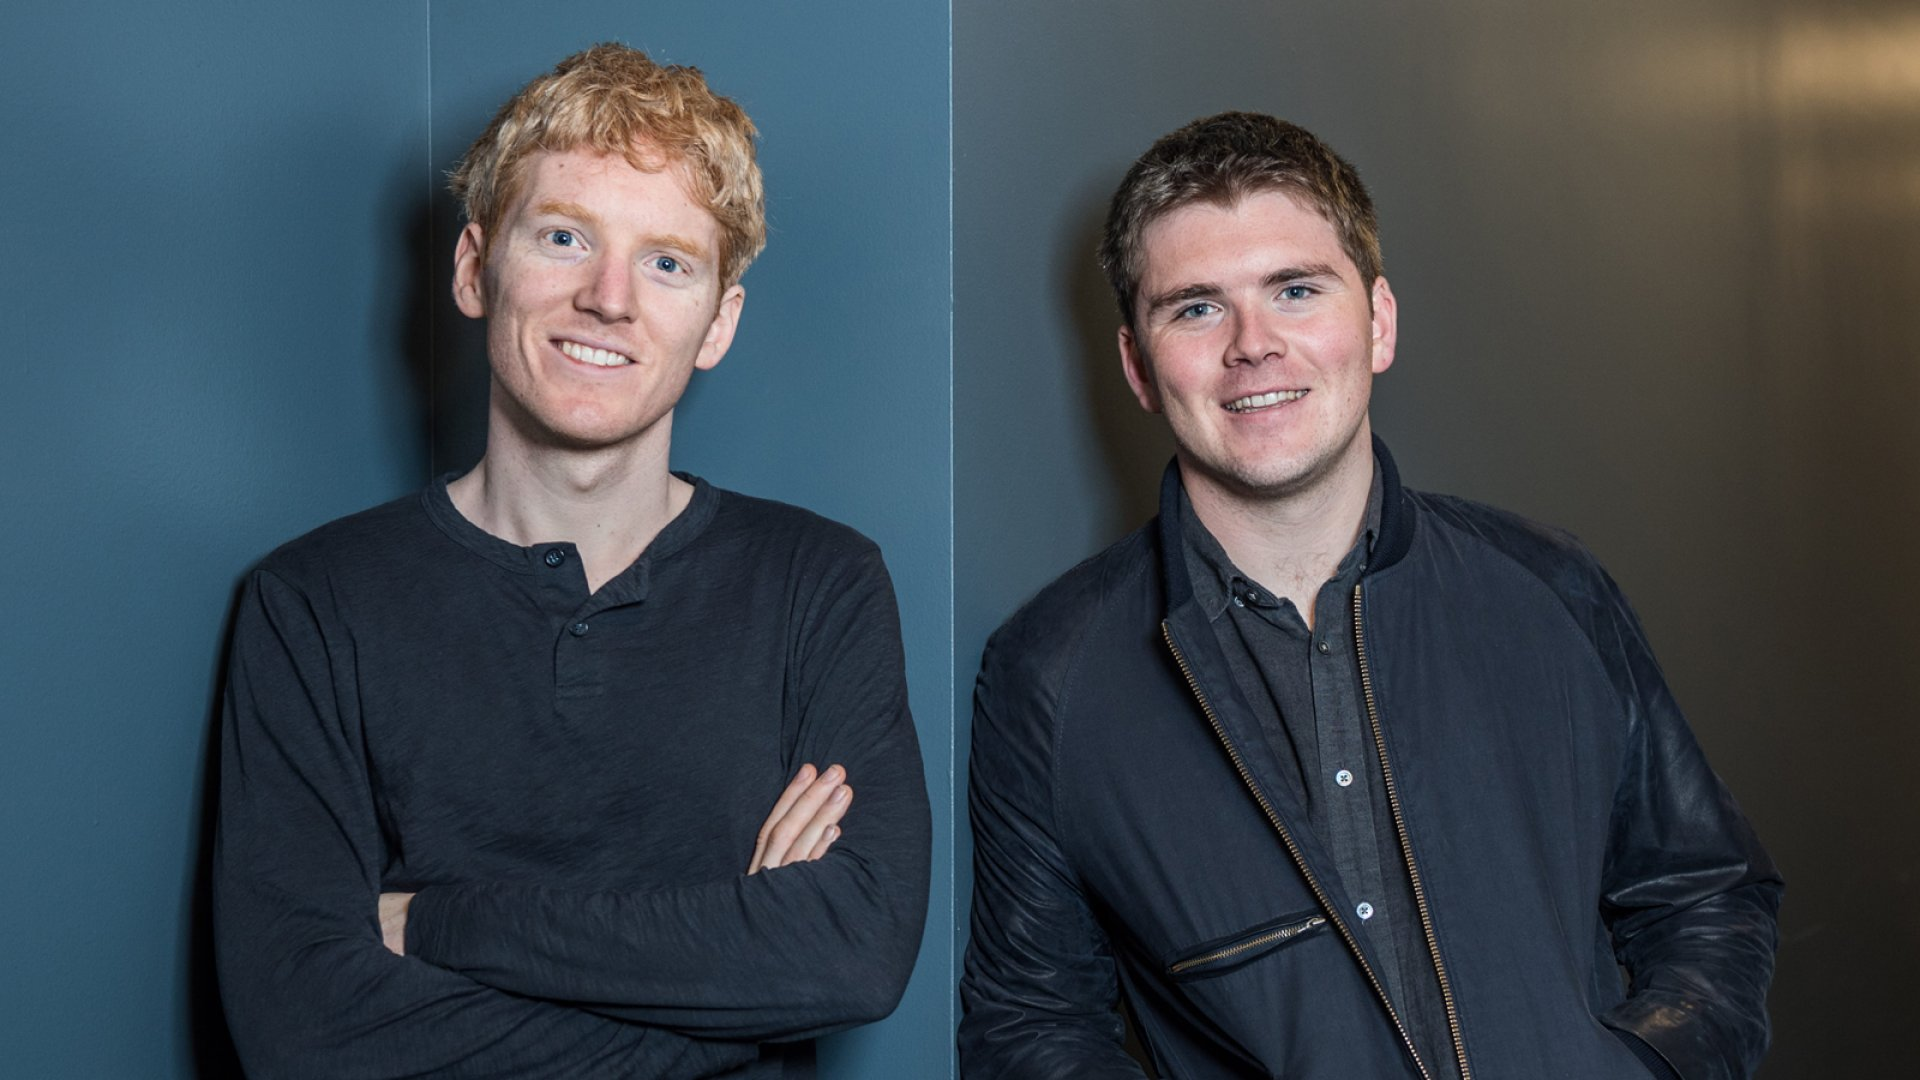 Stripe co-founders Patrick (left) and John Collison.